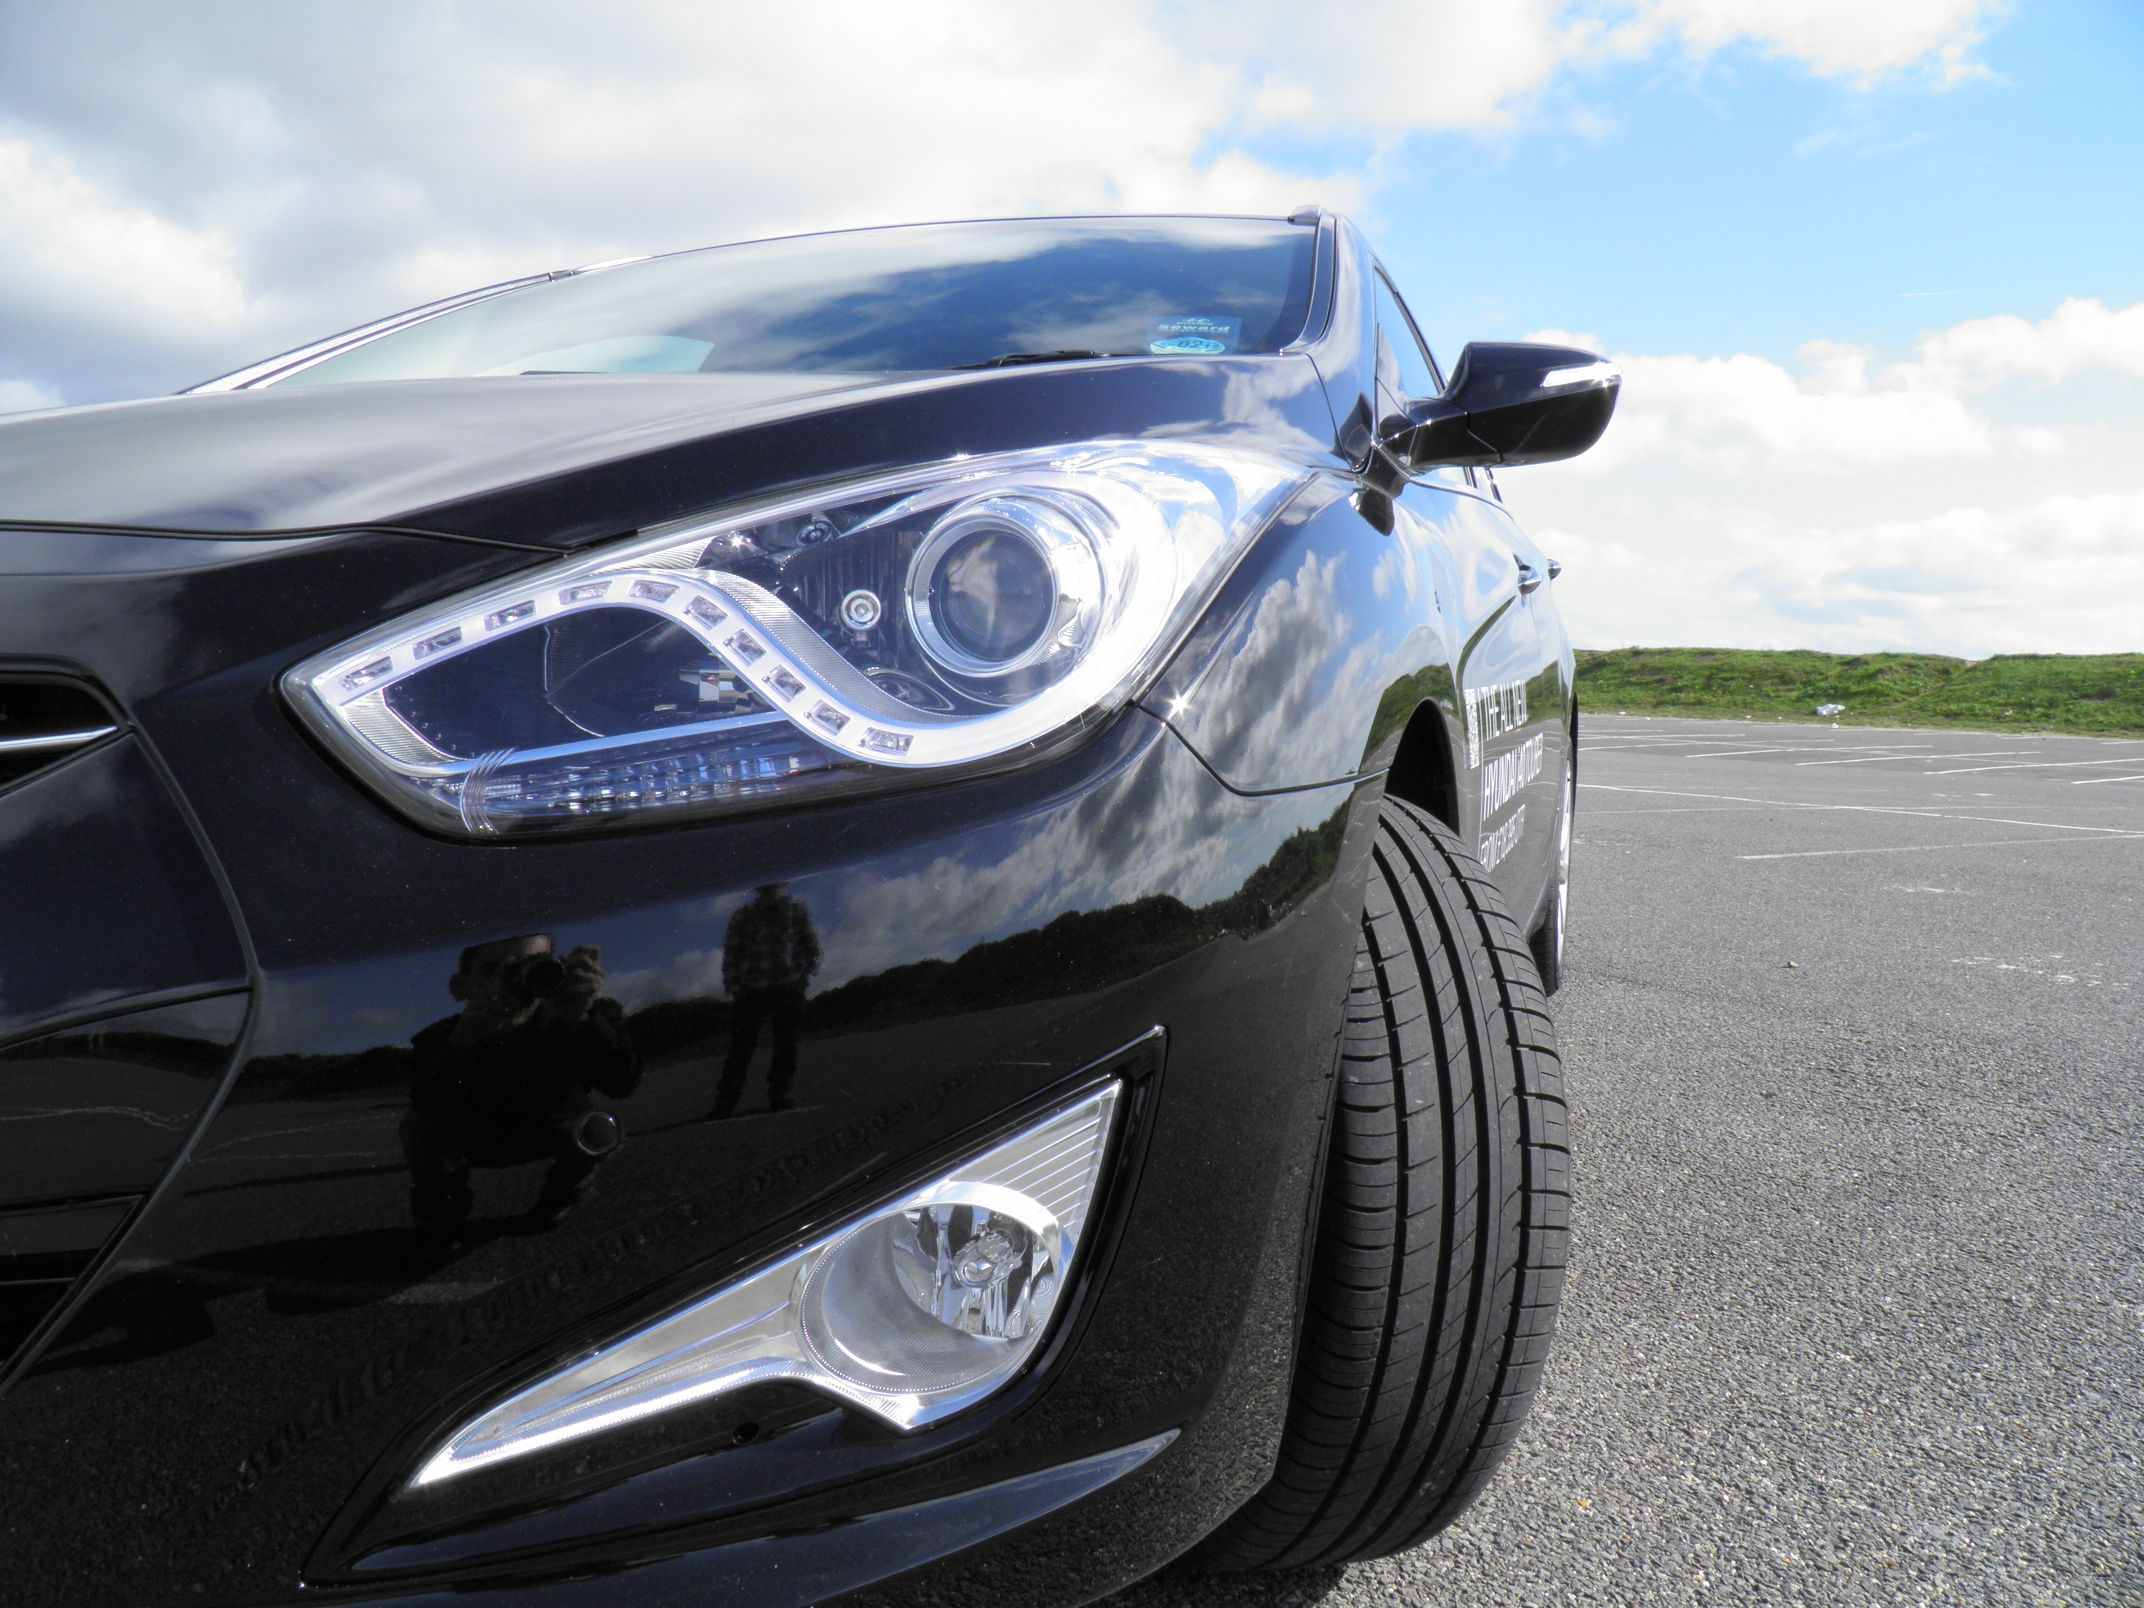 Review: Hyundai i40 Tourer 1.7 CRDi